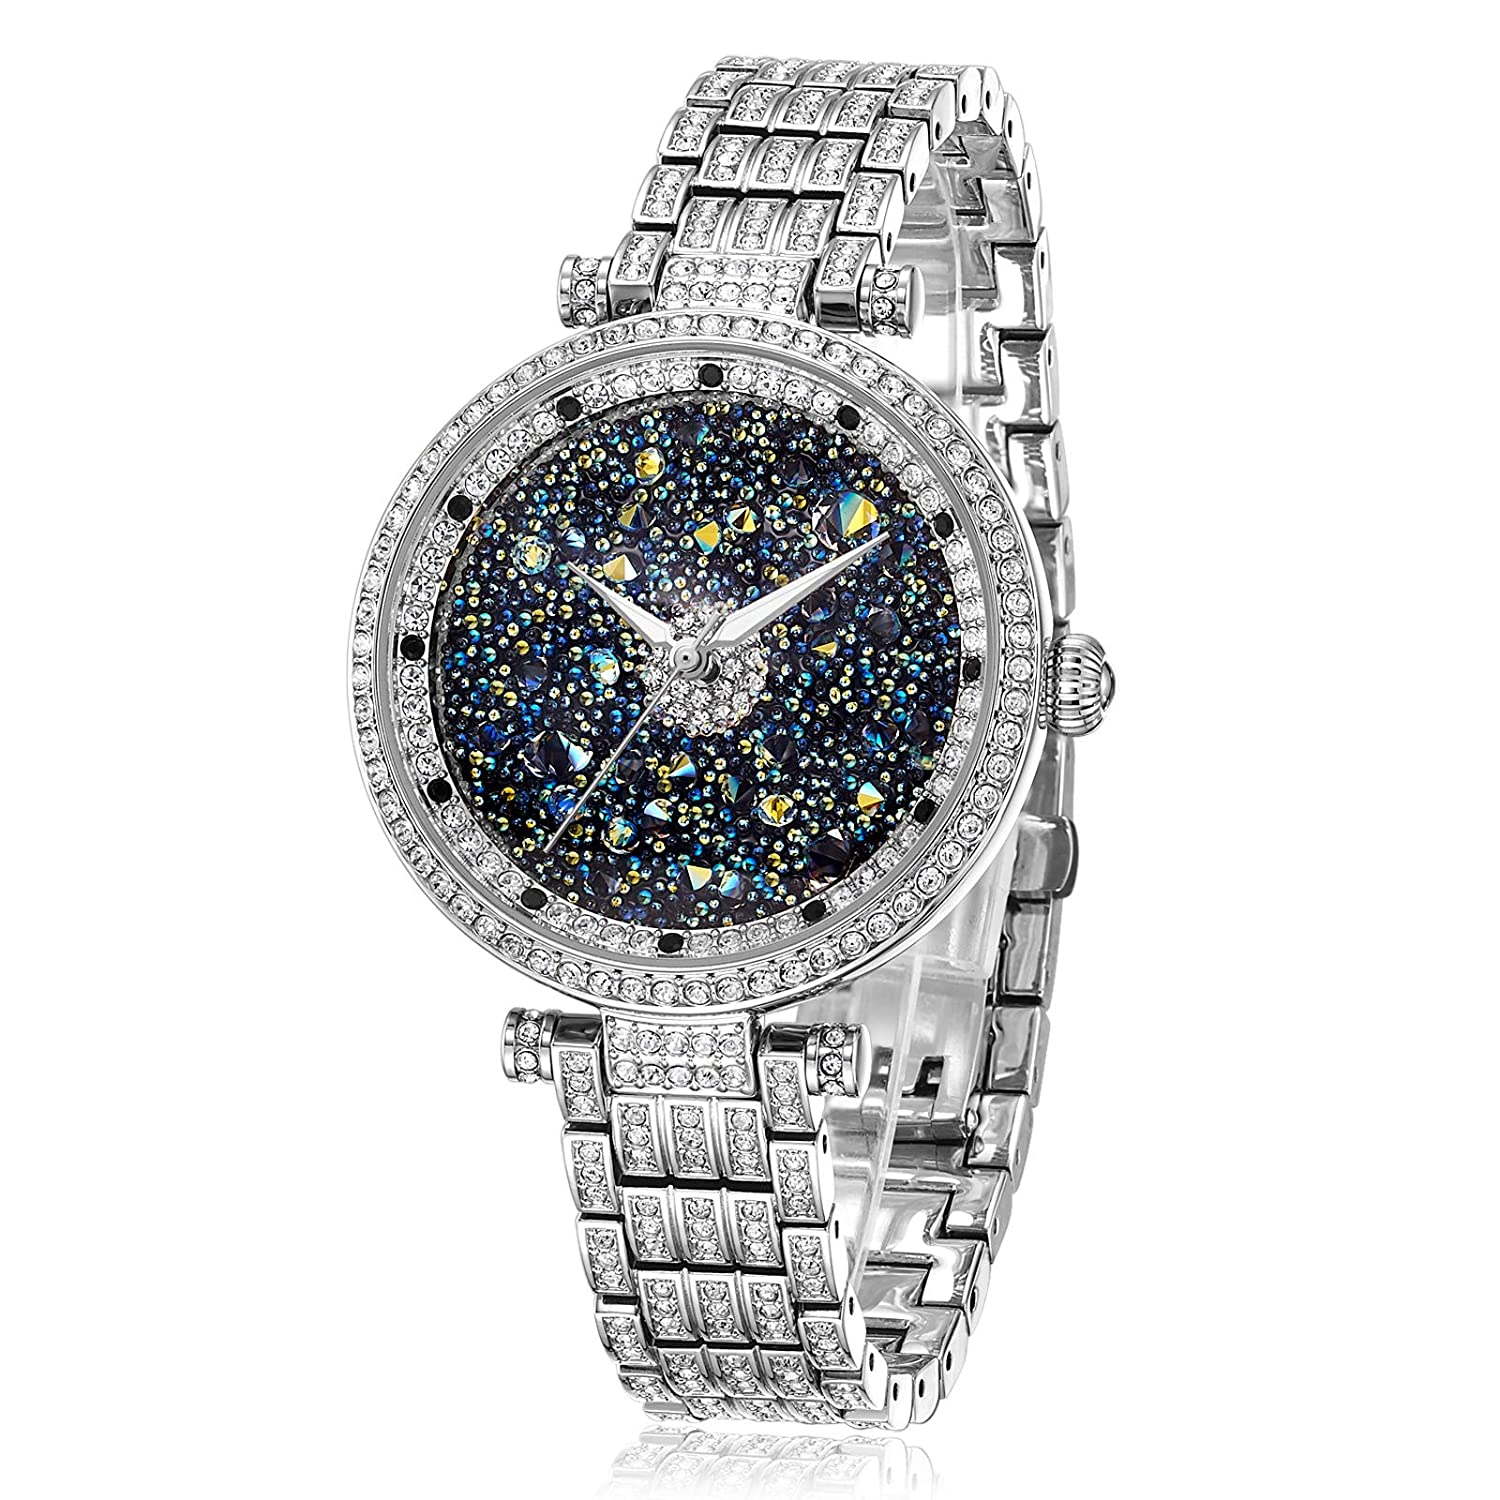 Princess Butterfly Watches Women Silver Crystal Watches for Women Silver Watch with Diamonds, Crystal Watches Platinum Plated Stainless Steel Crystal Watch, Waterproof Women s Watch Japan Quart